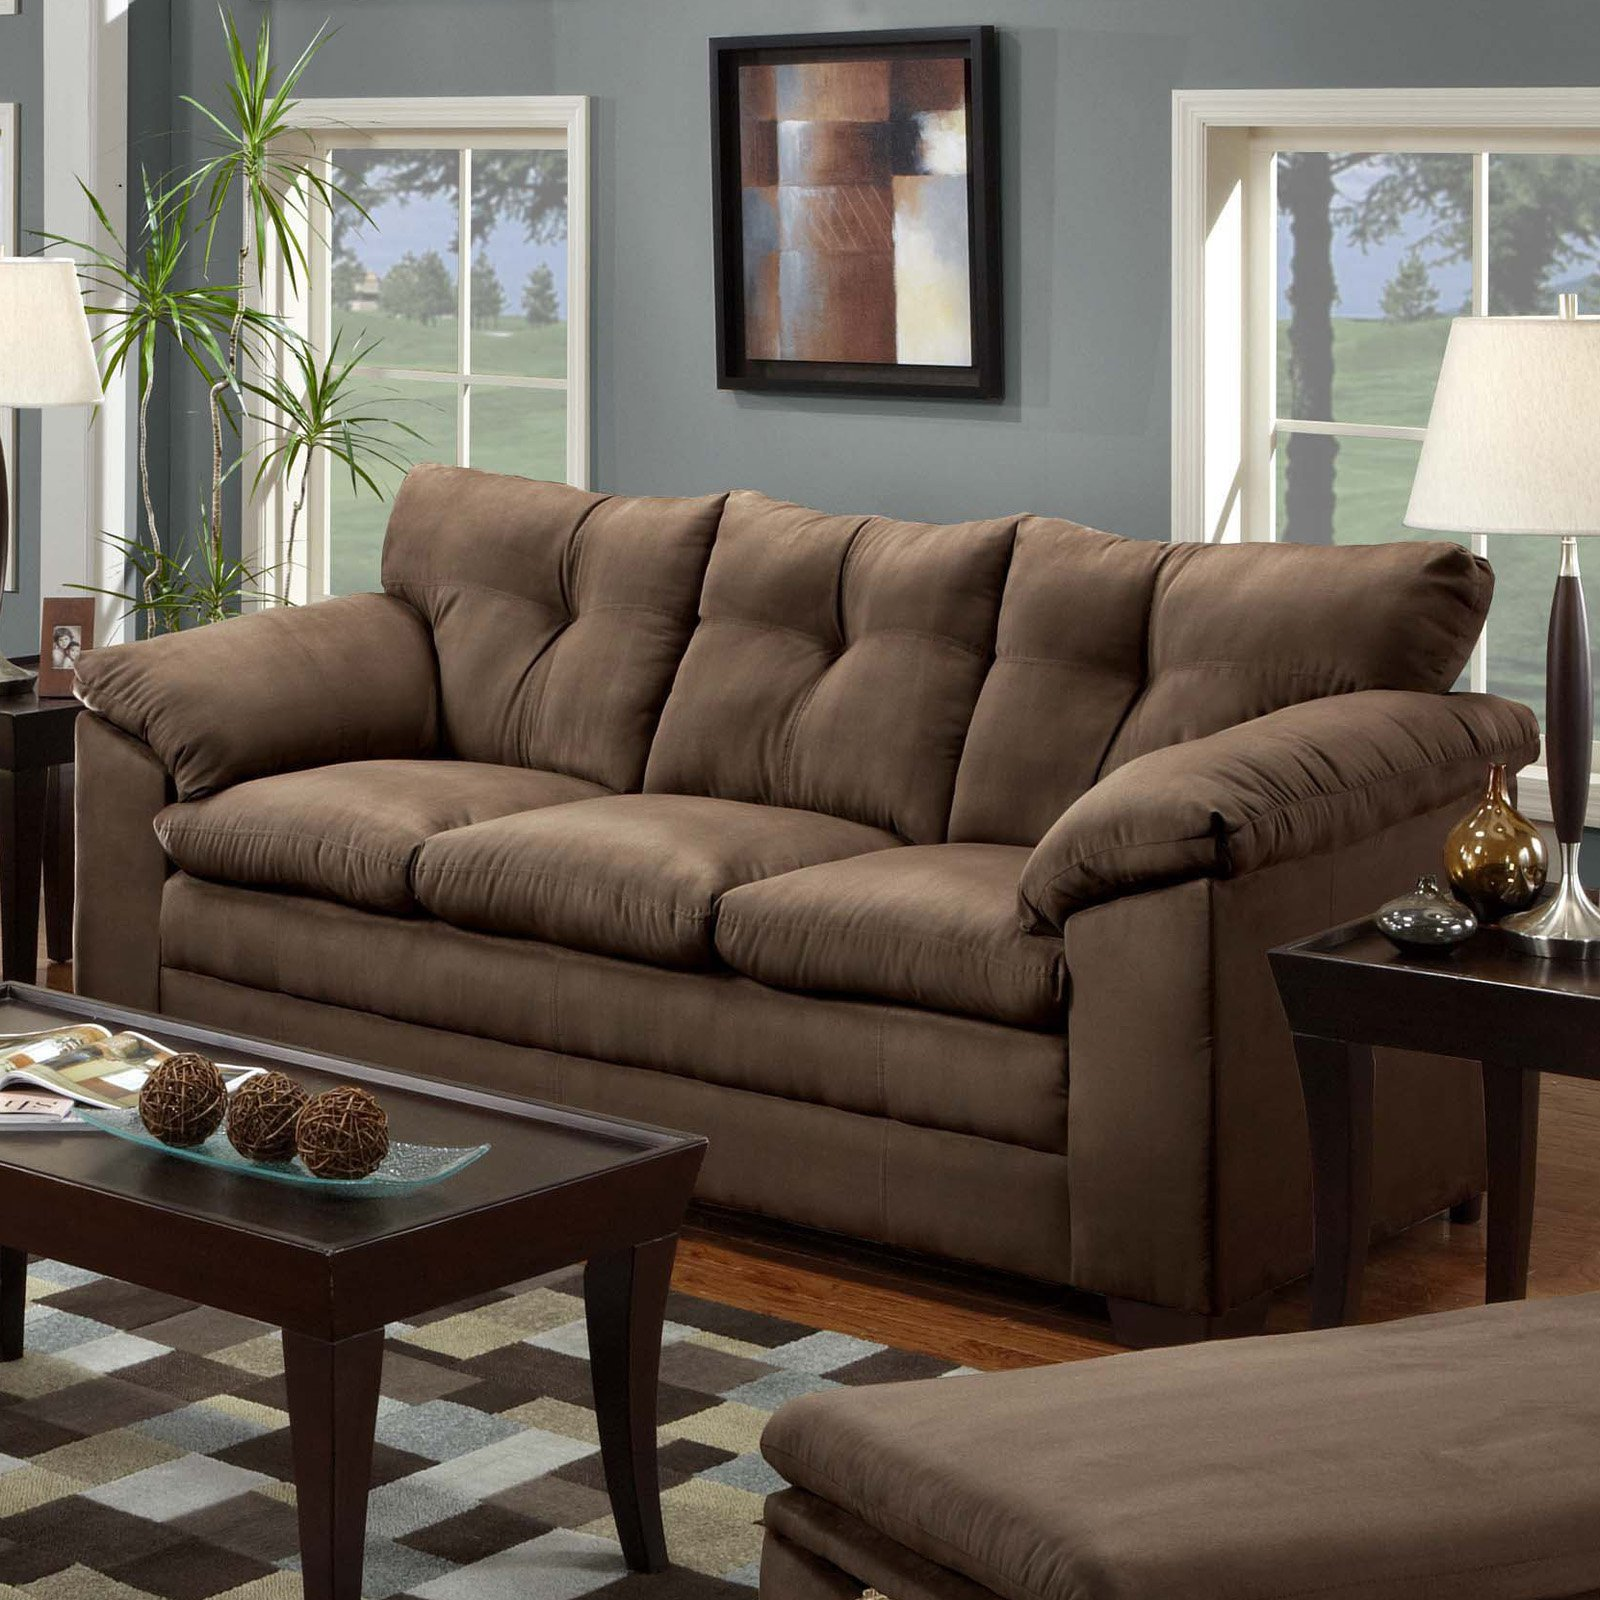 simmons harbortown sofa. simmons luna chocolate microfiber sofa harbortown